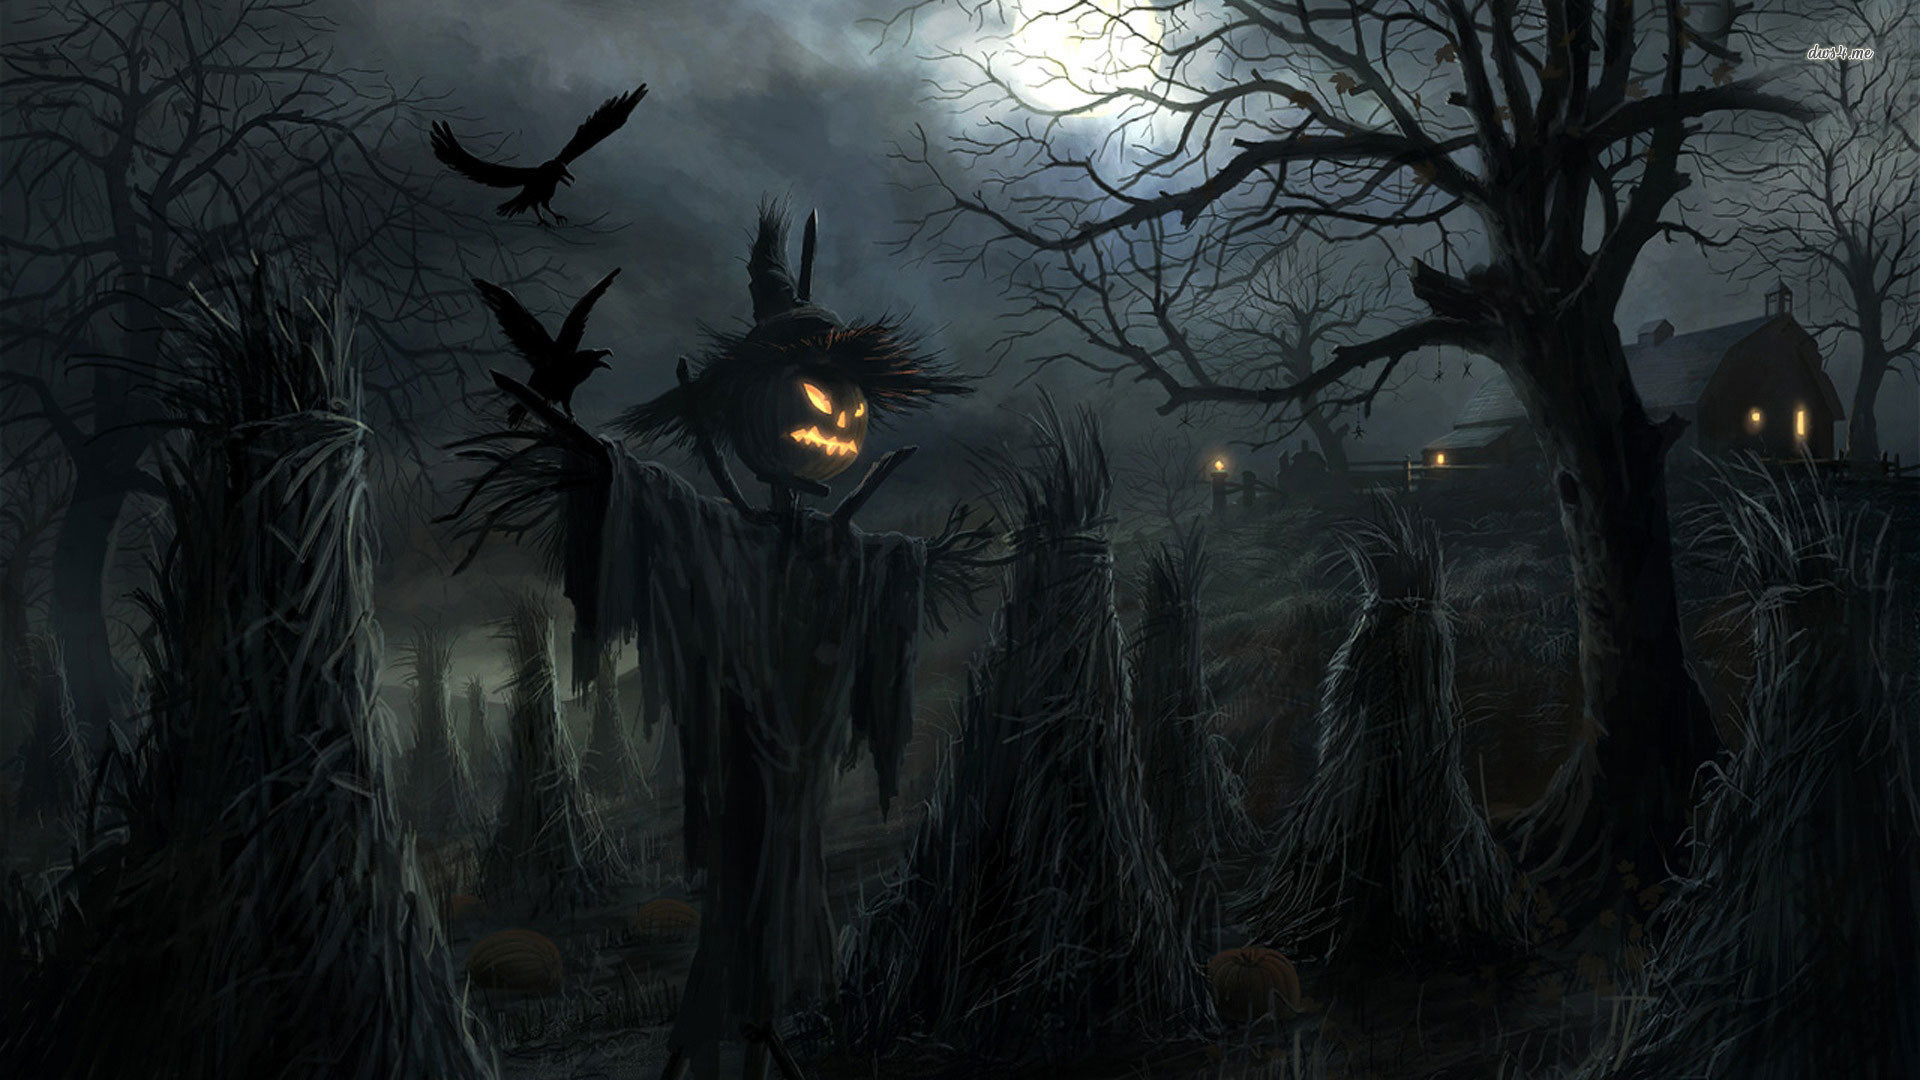 1920x1080 1920x1200 Creepy crows halloween moon radojavor scarecrow scary widescreen  desktop mobile iphone android hd wallpaper and desktop.